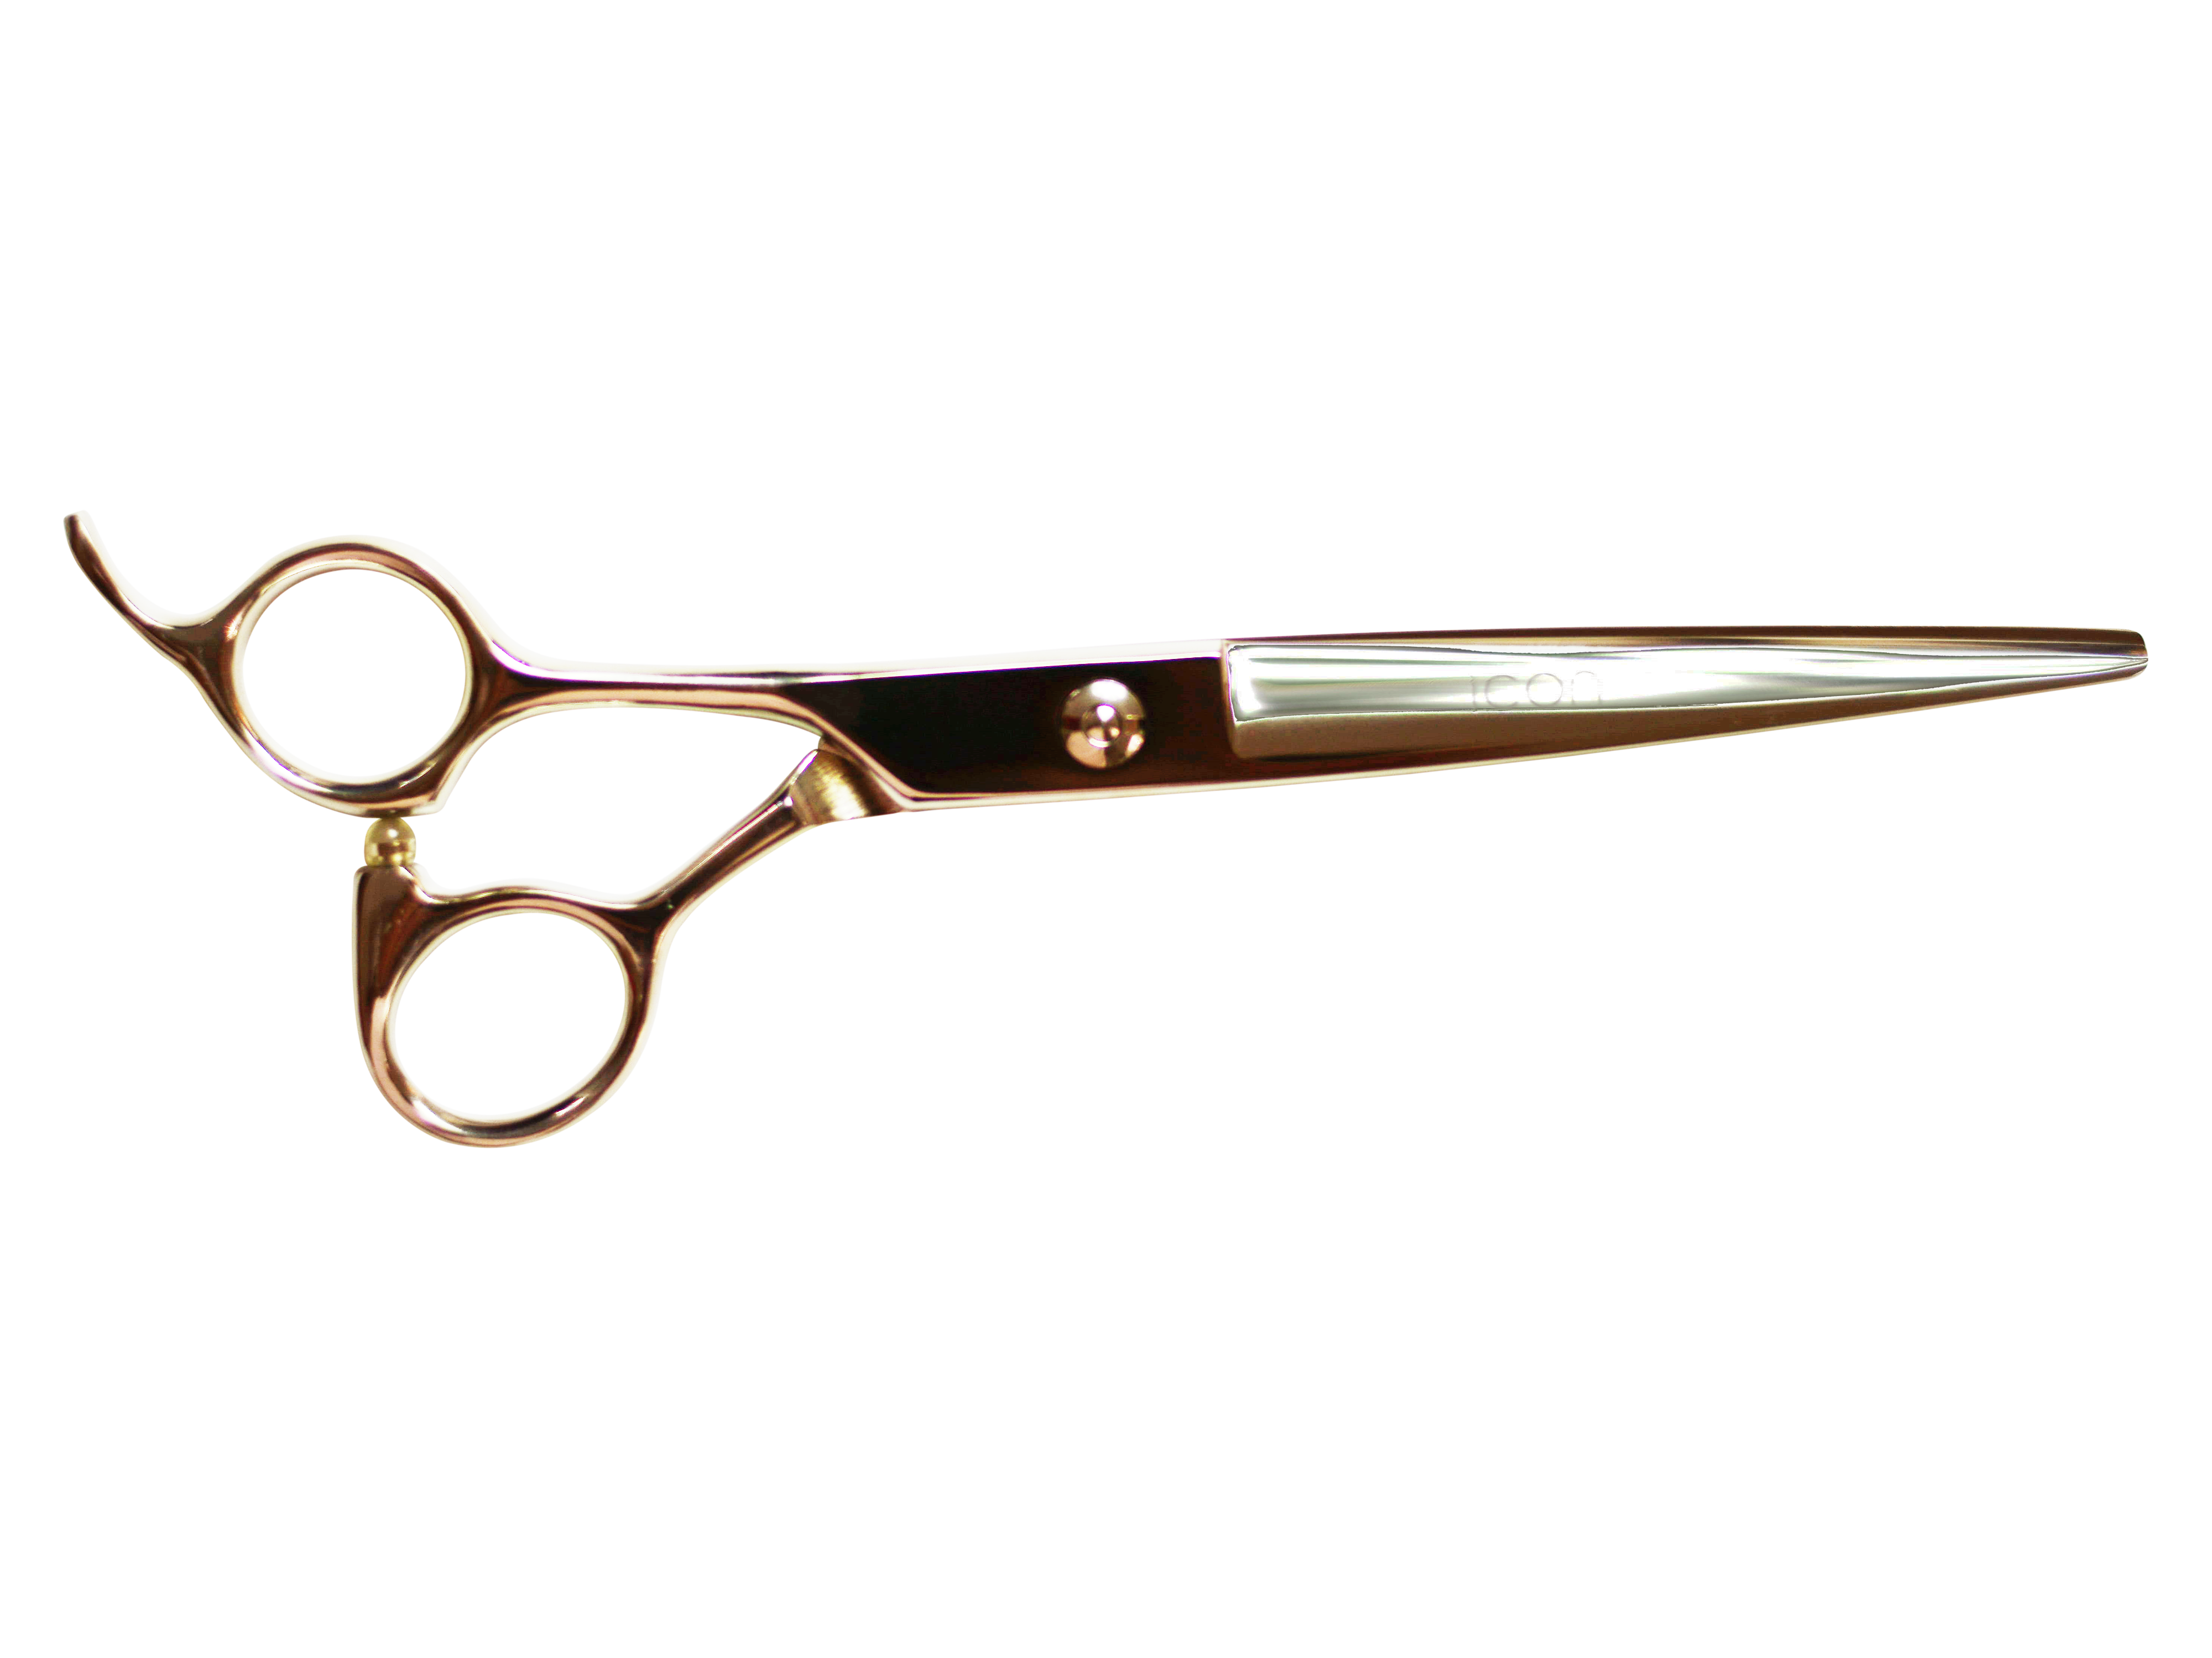 Clipart scissors baber. Shears barber icon long